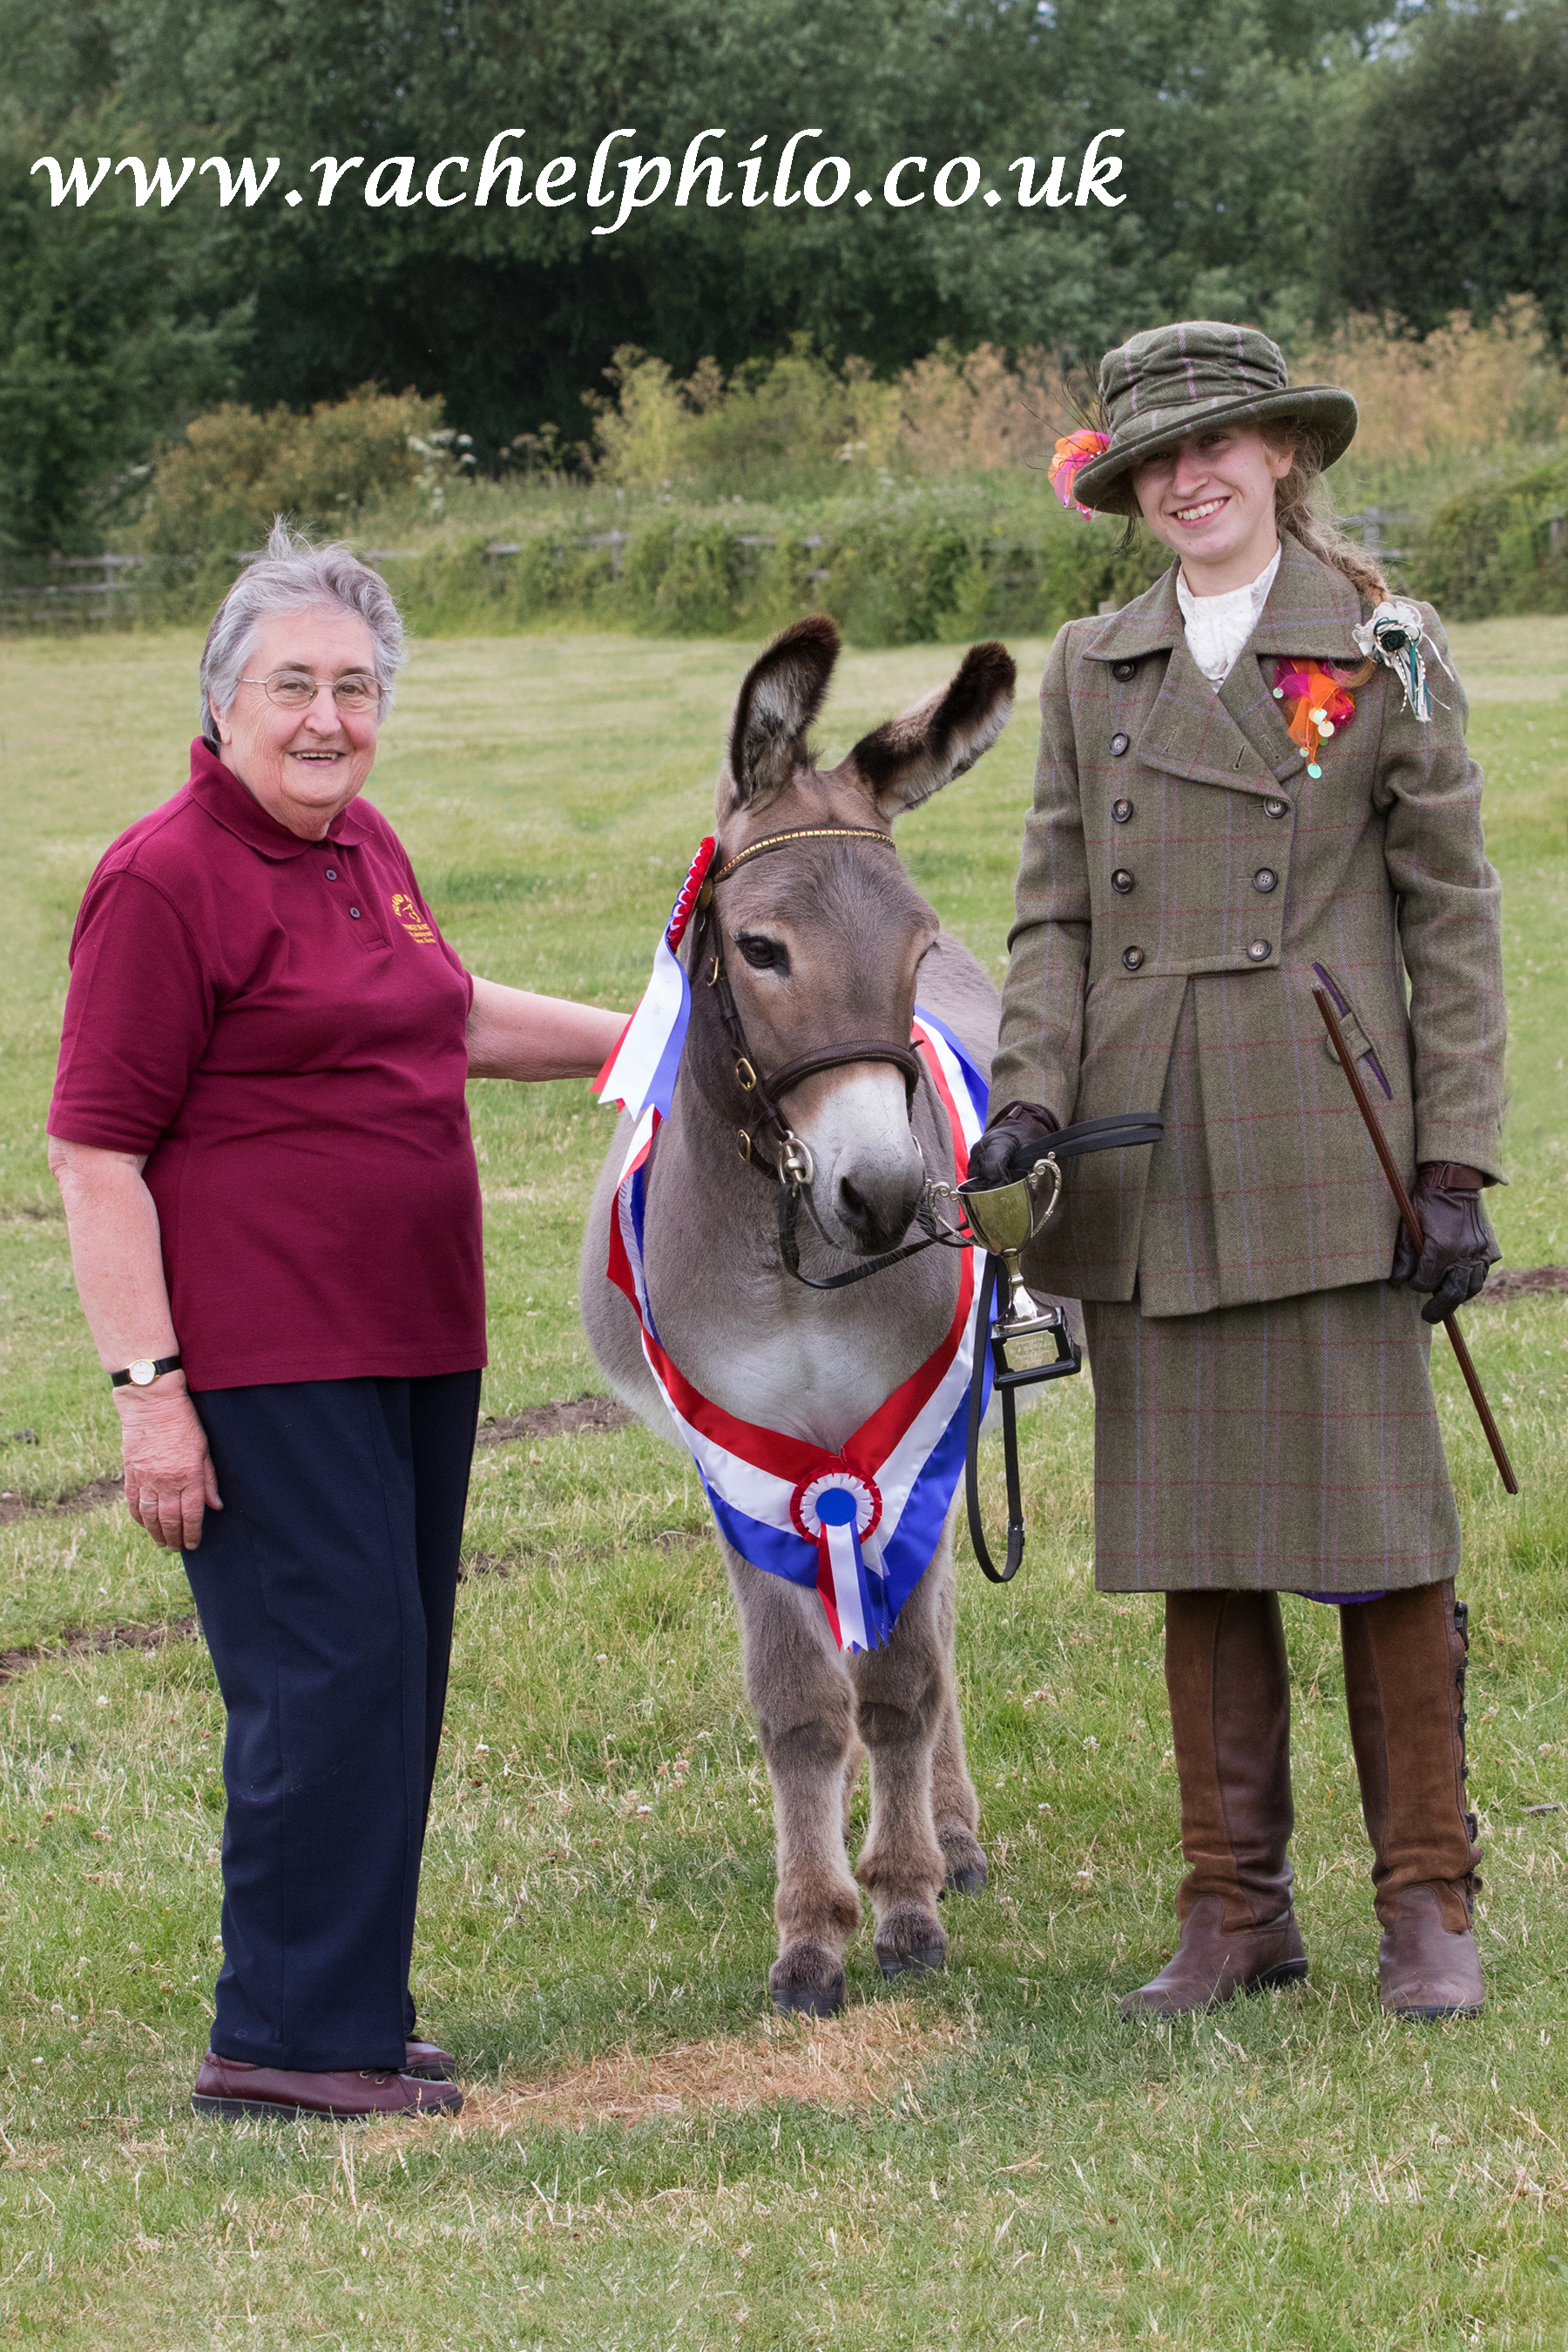 Judy Gibbons (left), Chair of Trustees, with the In Hand Champion donkey Gamlingay the Alchemist and handler Jade Weaver